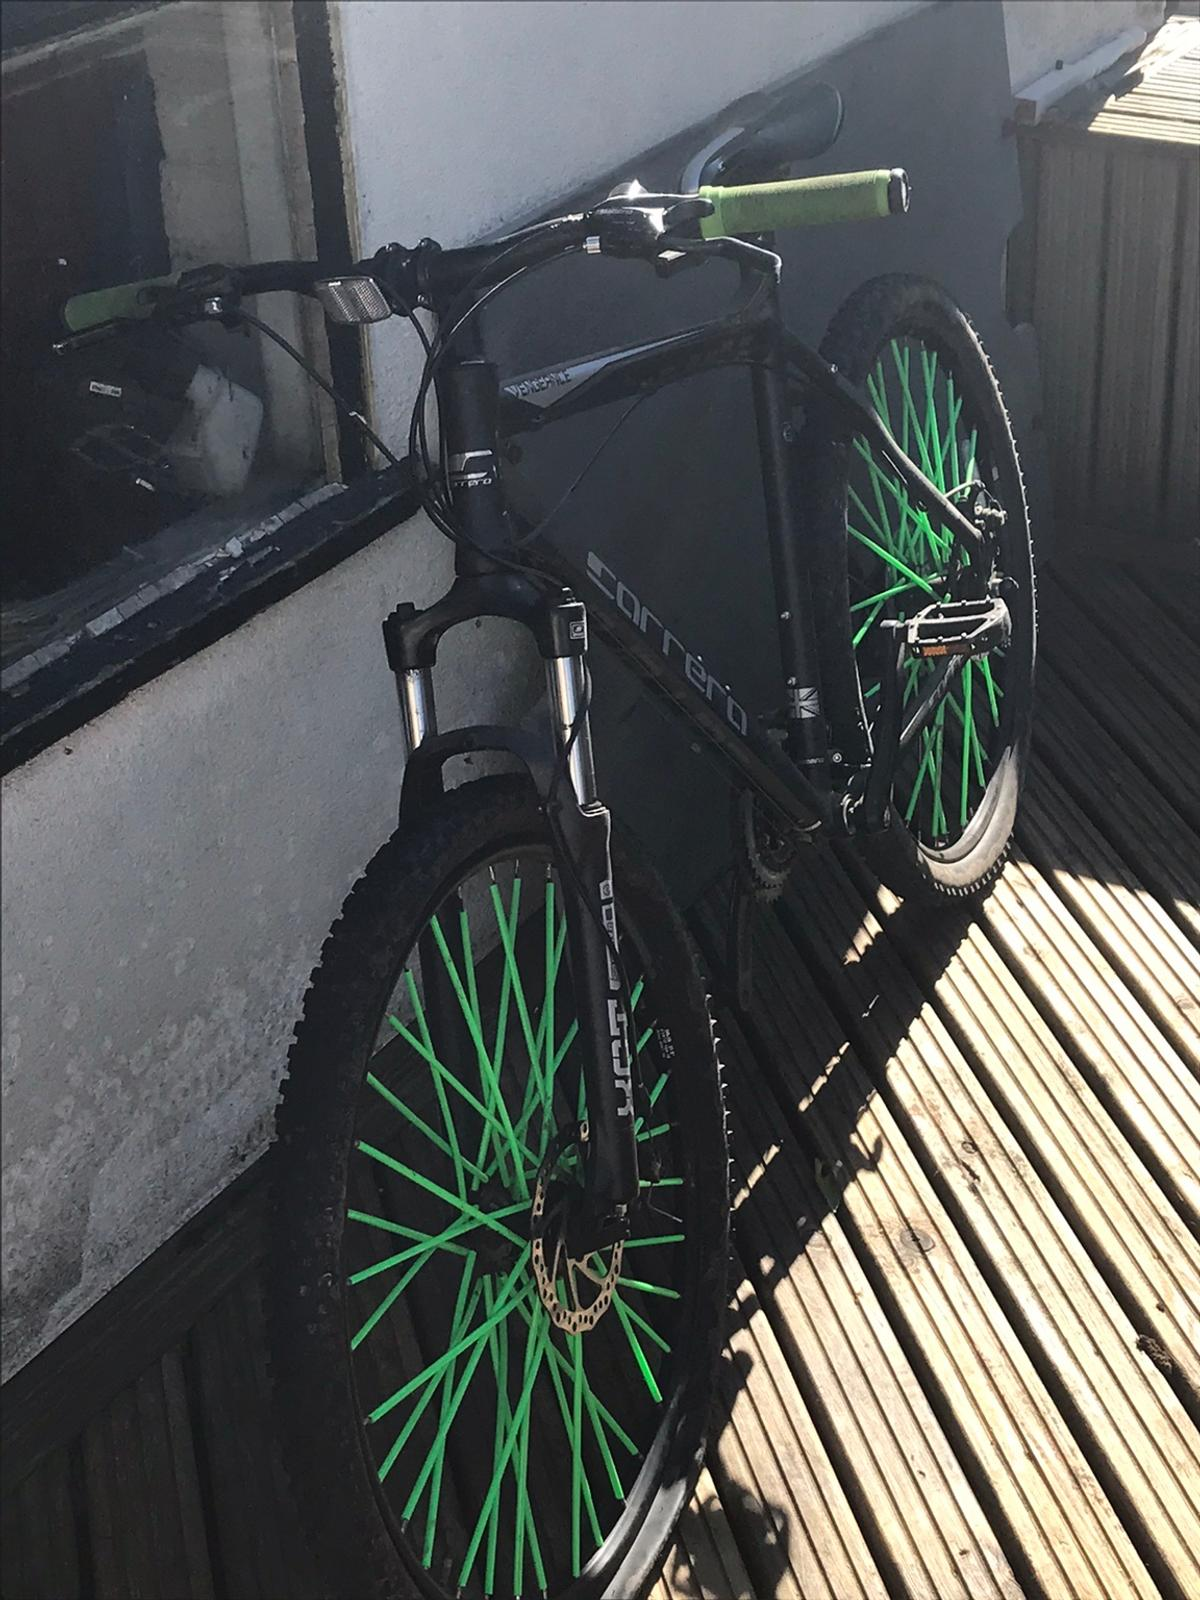 Had this bike for 2 years and don't use it anymore. Front wheel needs a new inner tube but doesn't cost much to replace. Has green ODI grips on and green spoke covers which can be removed easily. Open to offers.